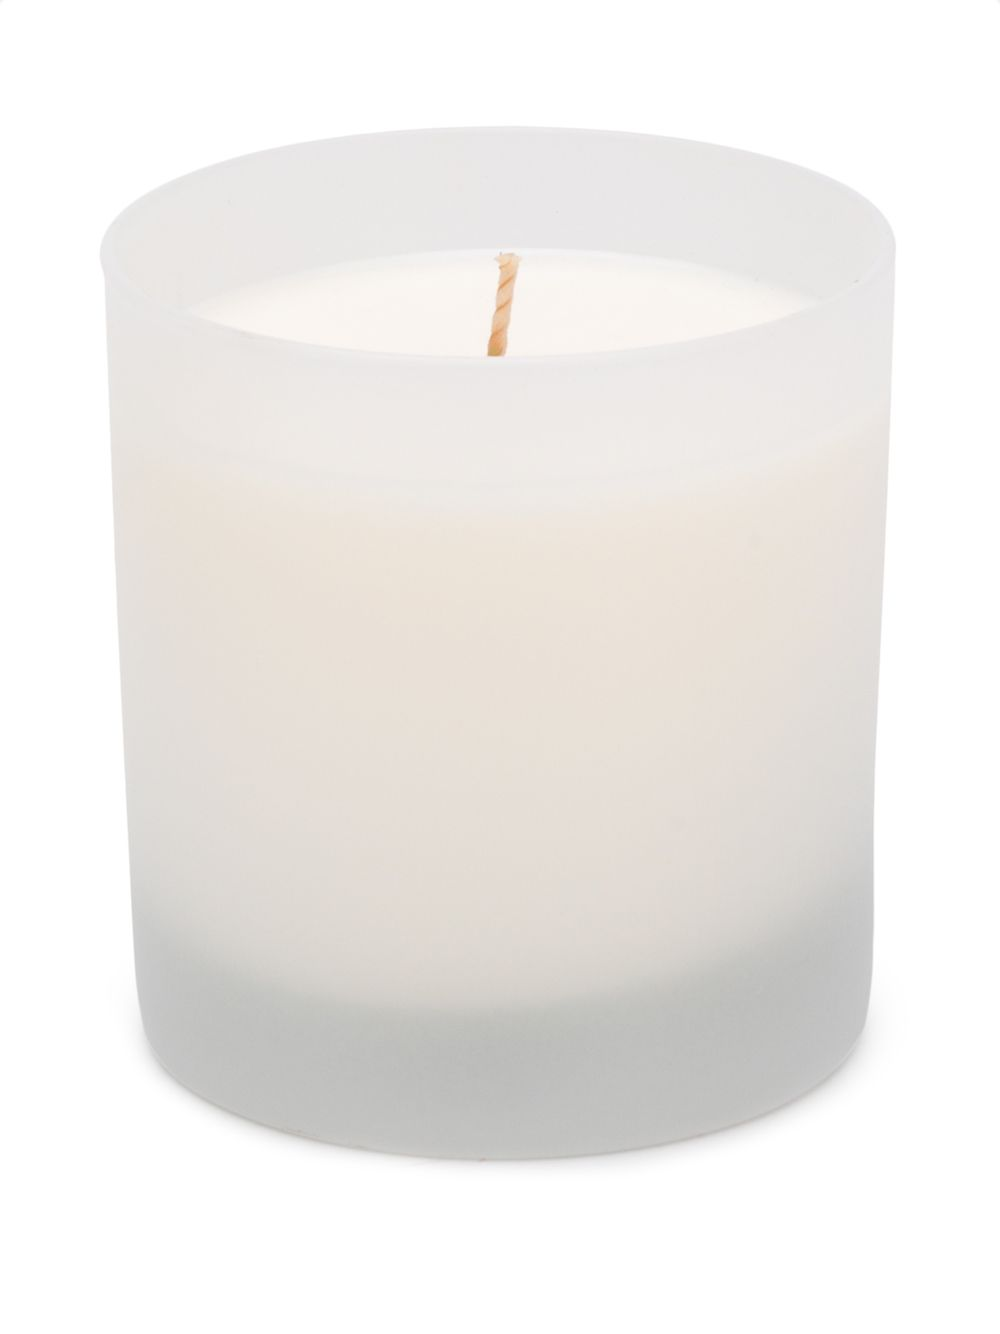 270gr Ebano fragrance candle in frosted glass CULTI |  | CA CULTI VCS 270GEBANO